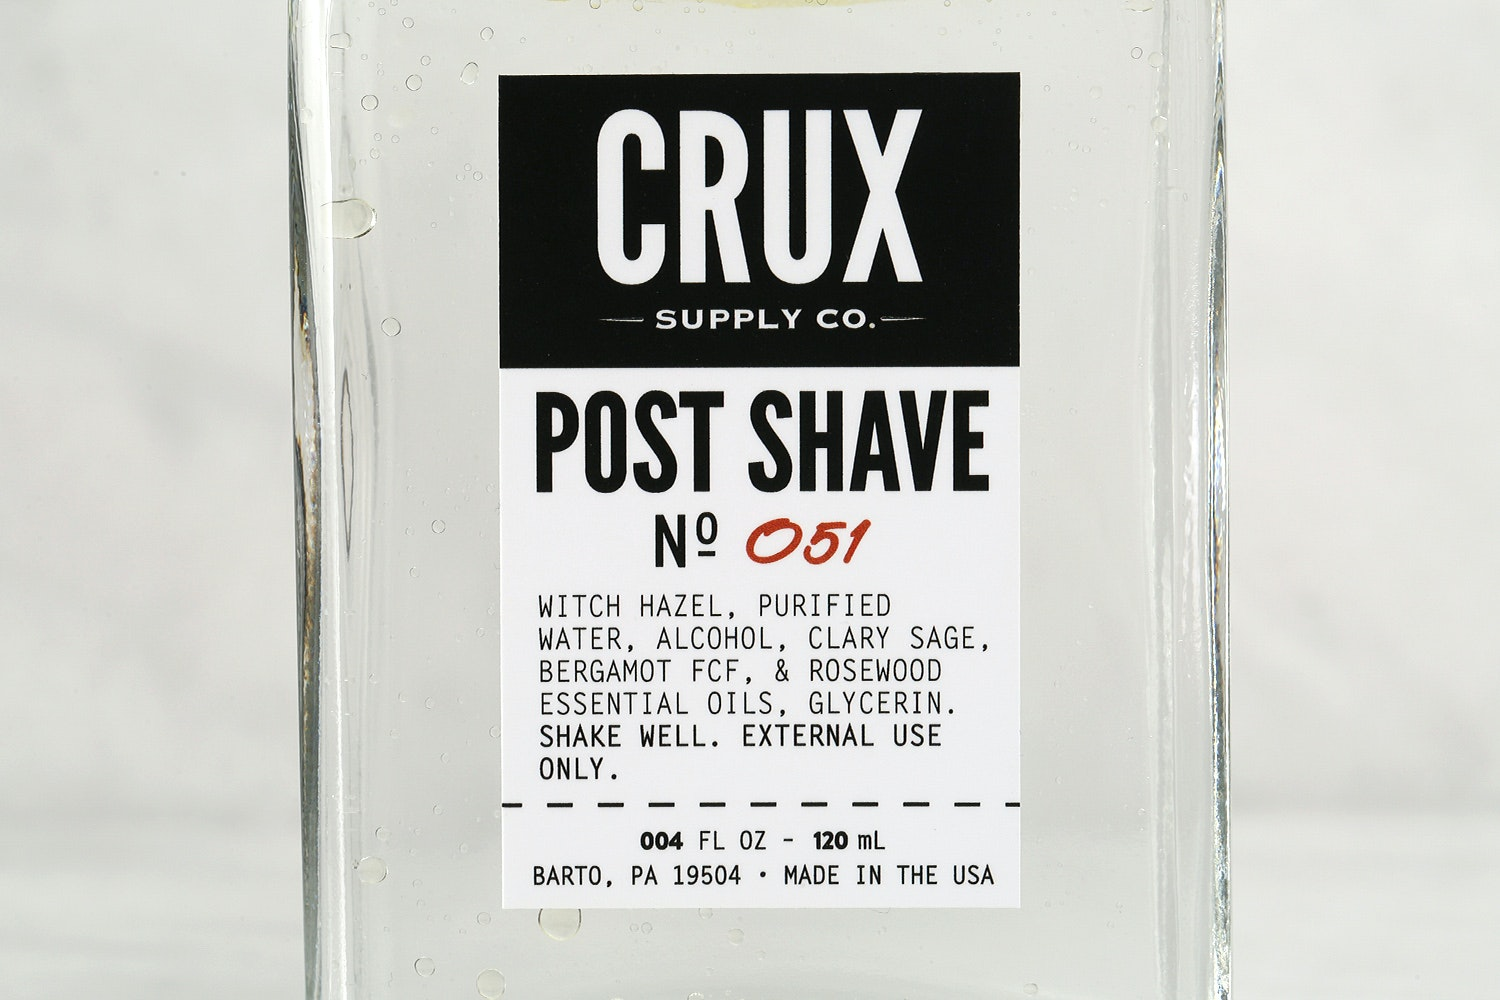 Crux Supply Co. Shaving Duo